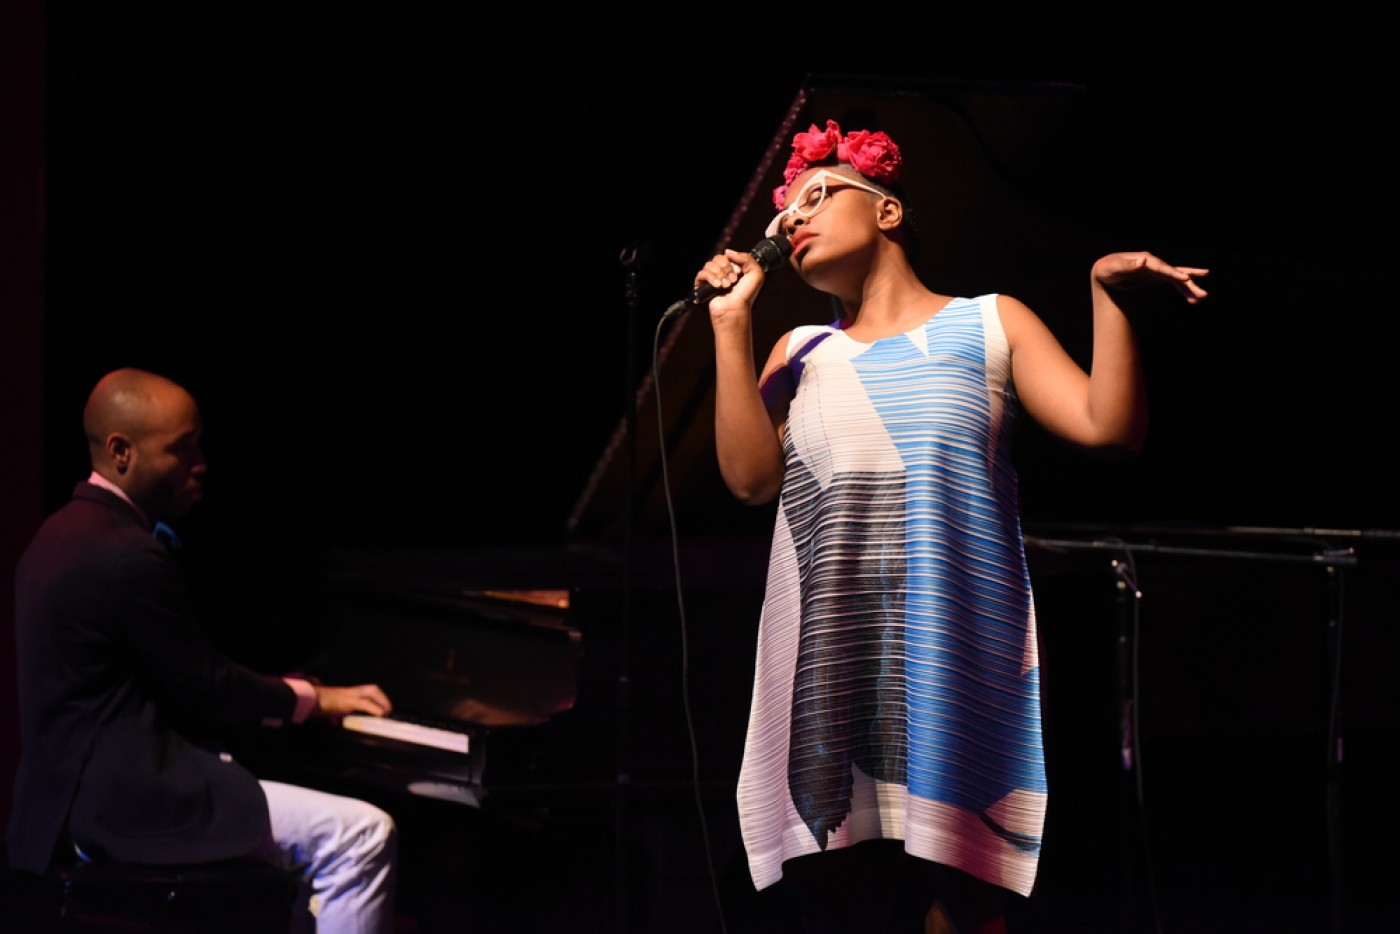 Aaron Diehl plays piano as Cécile McLorin Salvant sings. (Courtesy Celebrity Series of Boston)